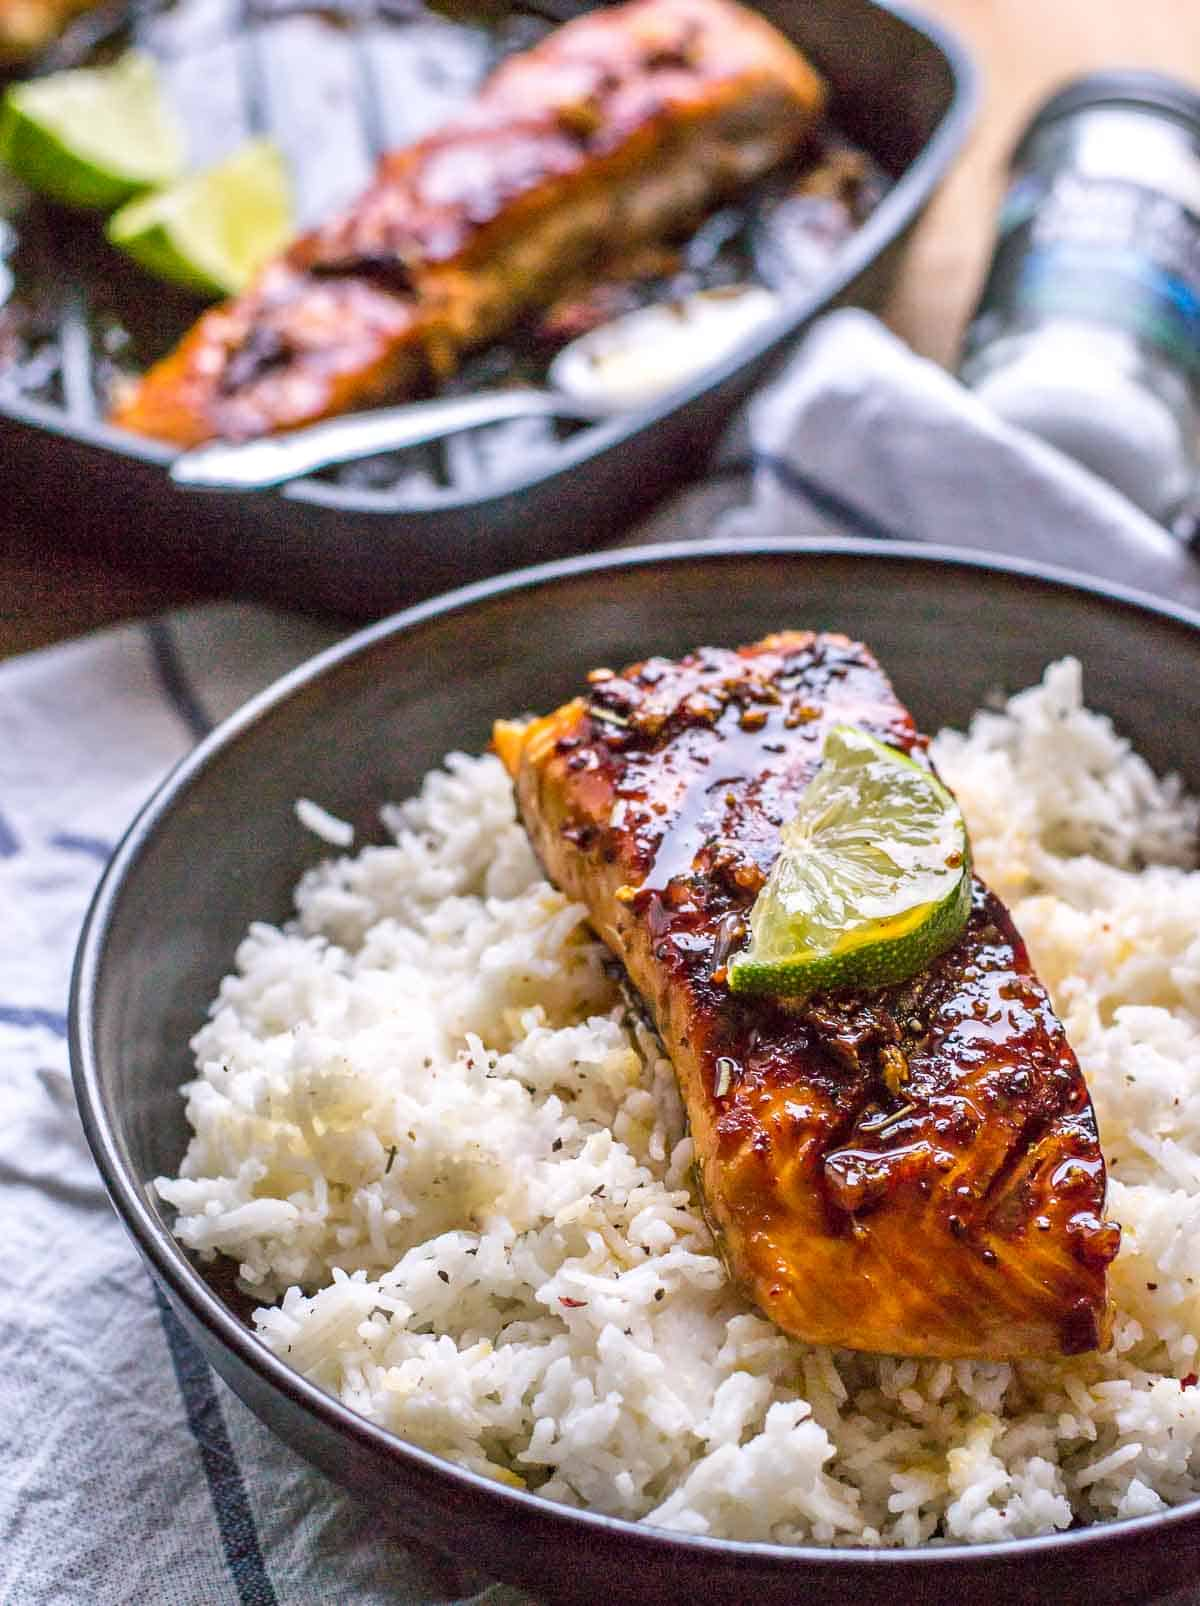 This 15-minute grilled honey garlic salmon is perfect for days when you crave a fancy meal but don't want to pay for it or spend hours making it. It is so finger-licking good that you'll imagine you are in an upscale restaurant enjoying a gourmet meal.